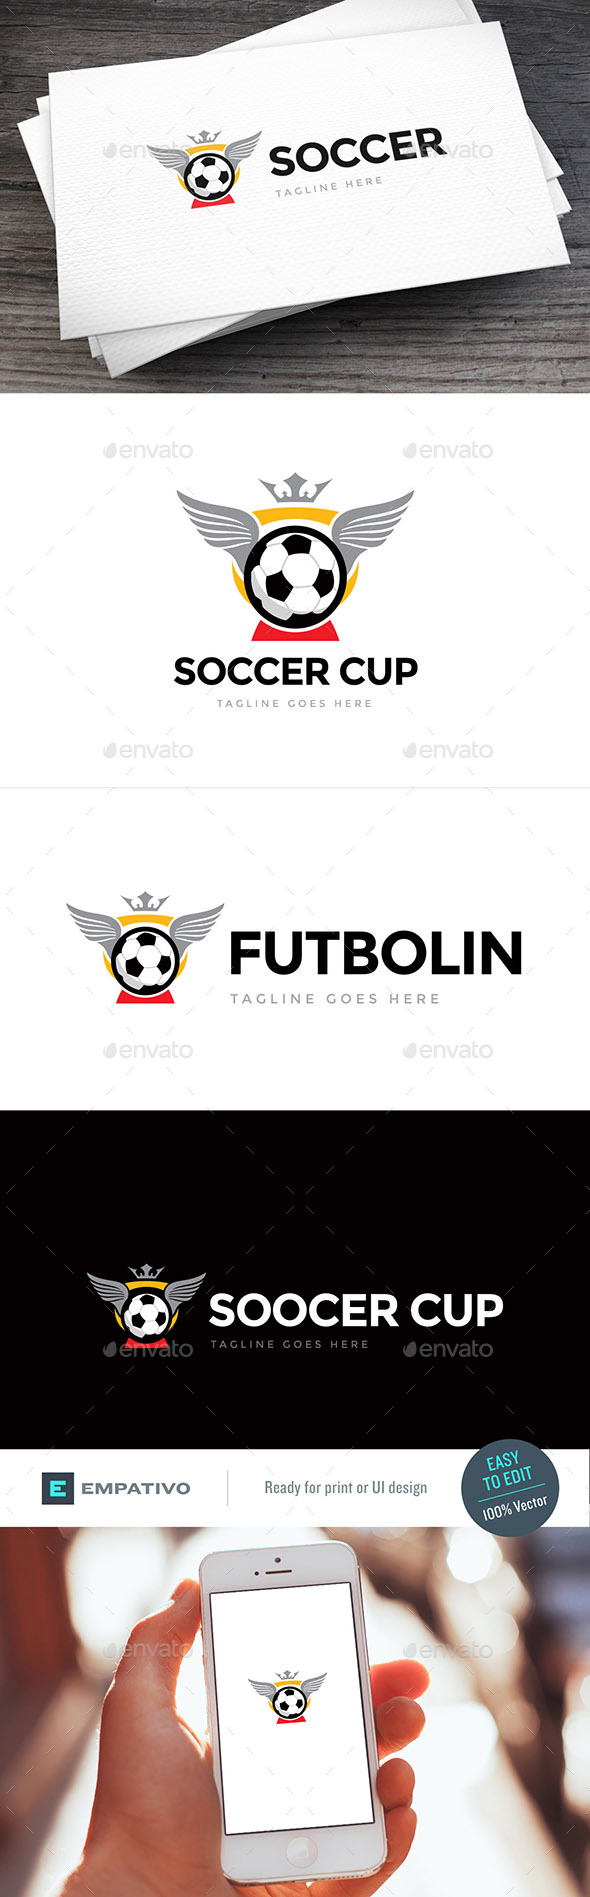 Soccer Cup Logo Template - Objects Logo Templates